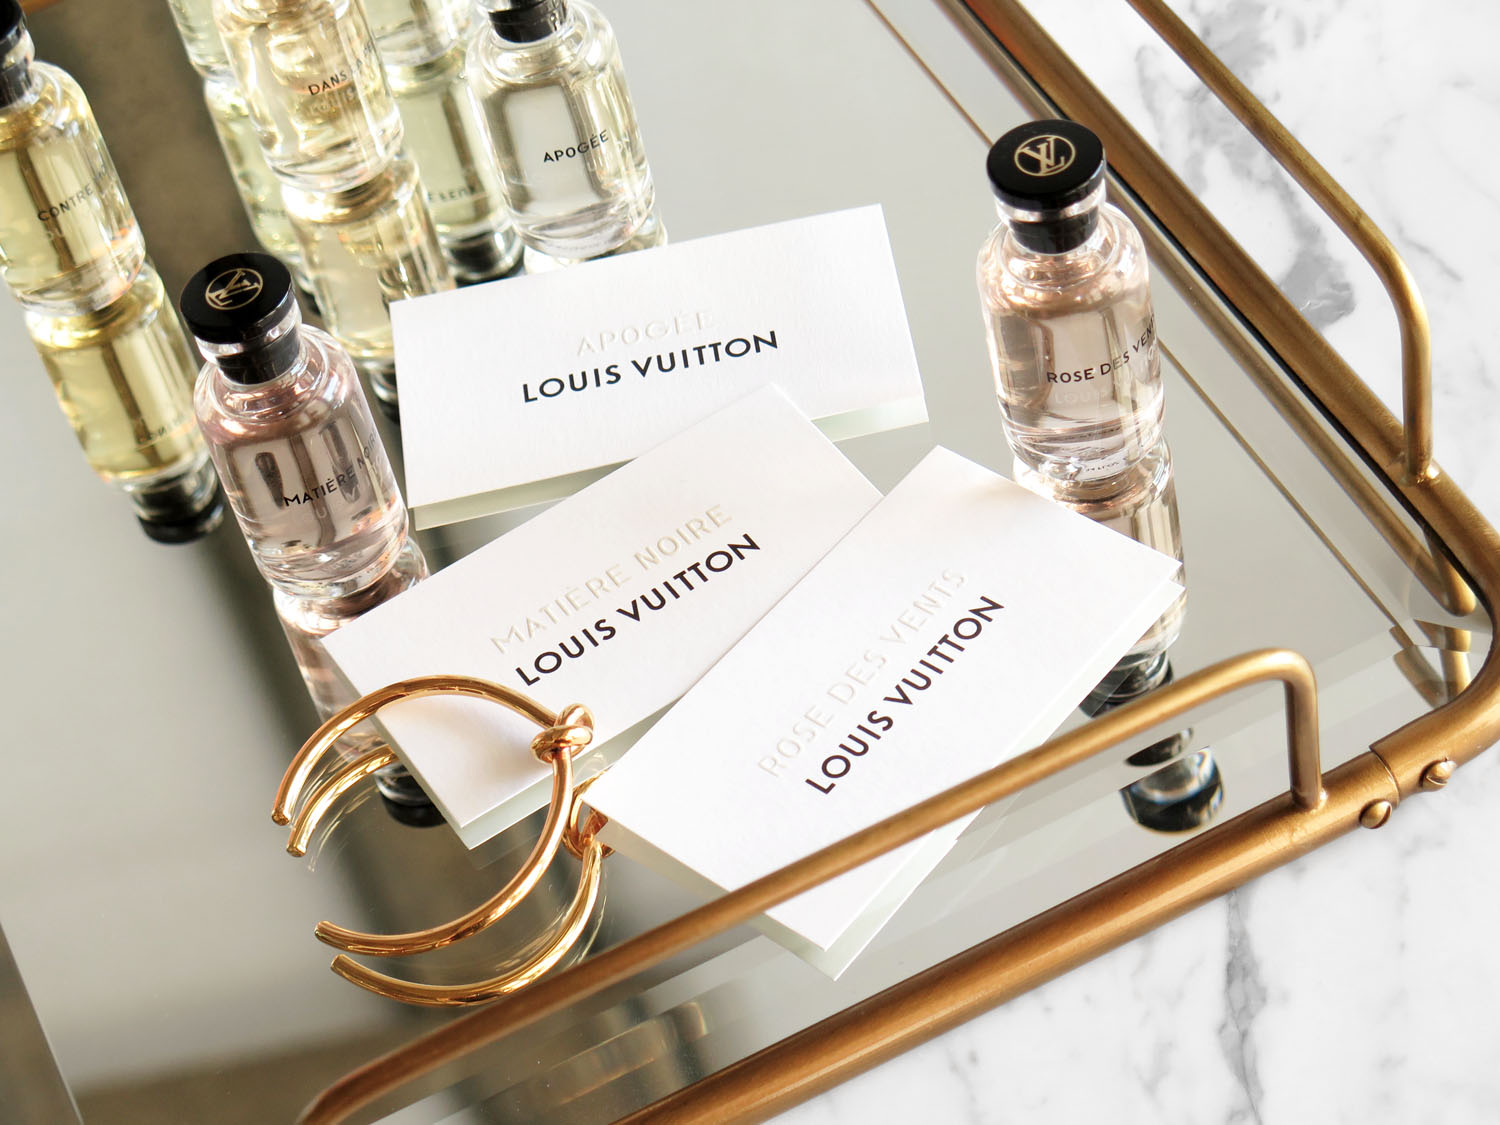 Louis Vuitton Perfume Review via The Beauty Look Book